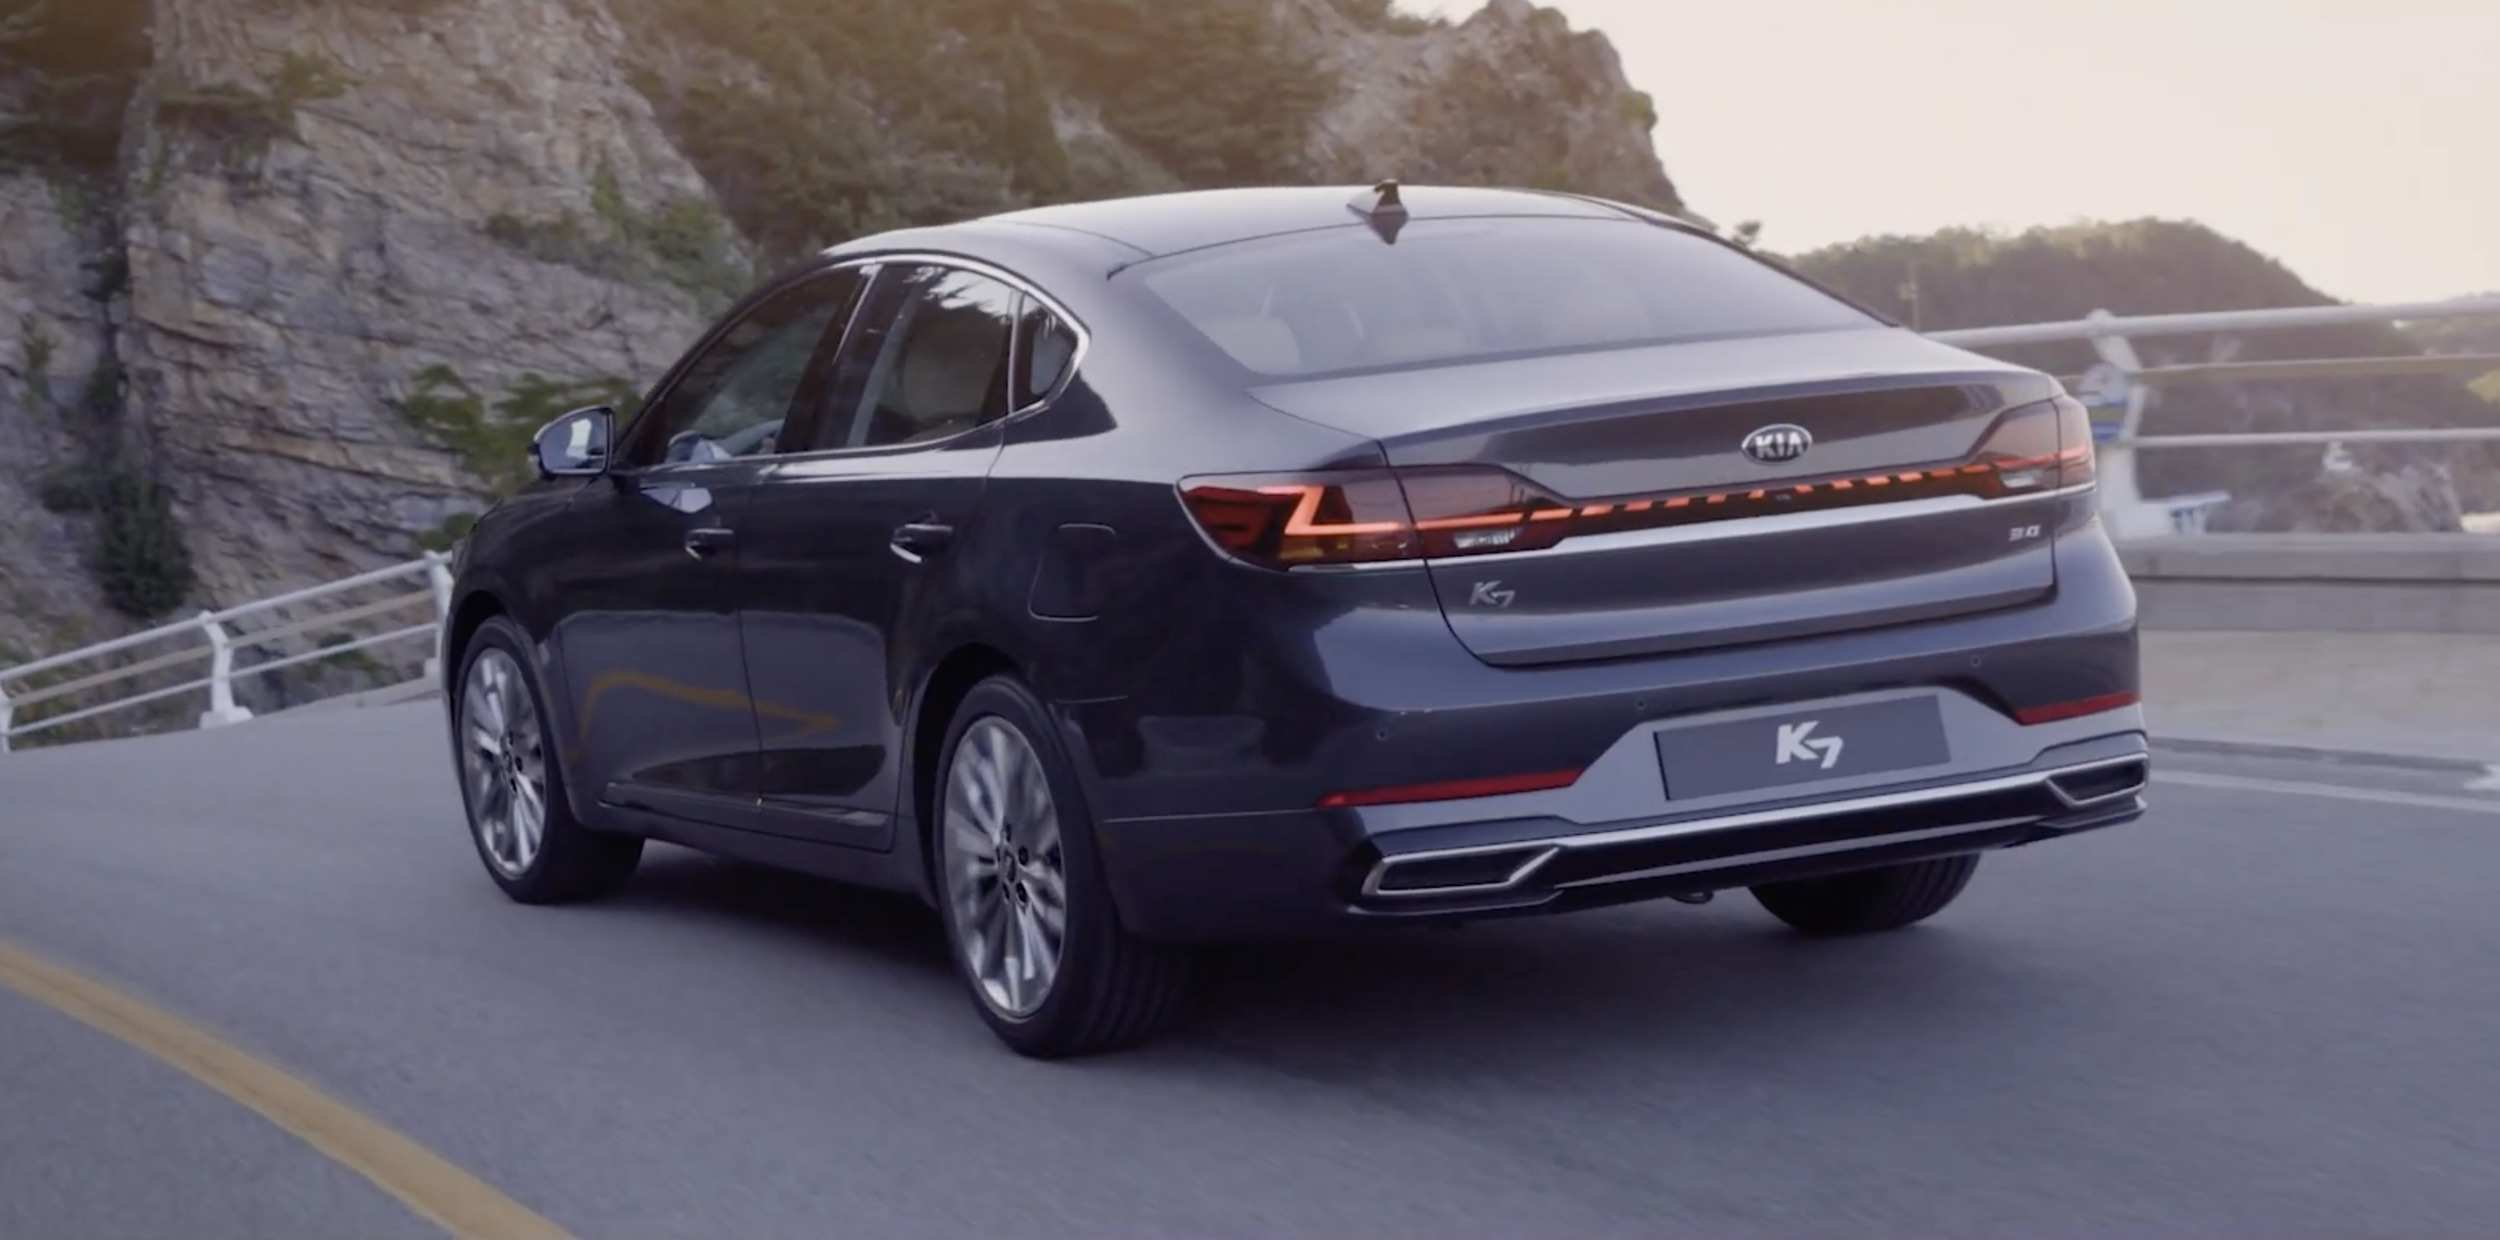 40 The 2020 All Kia Cadenza Exterior